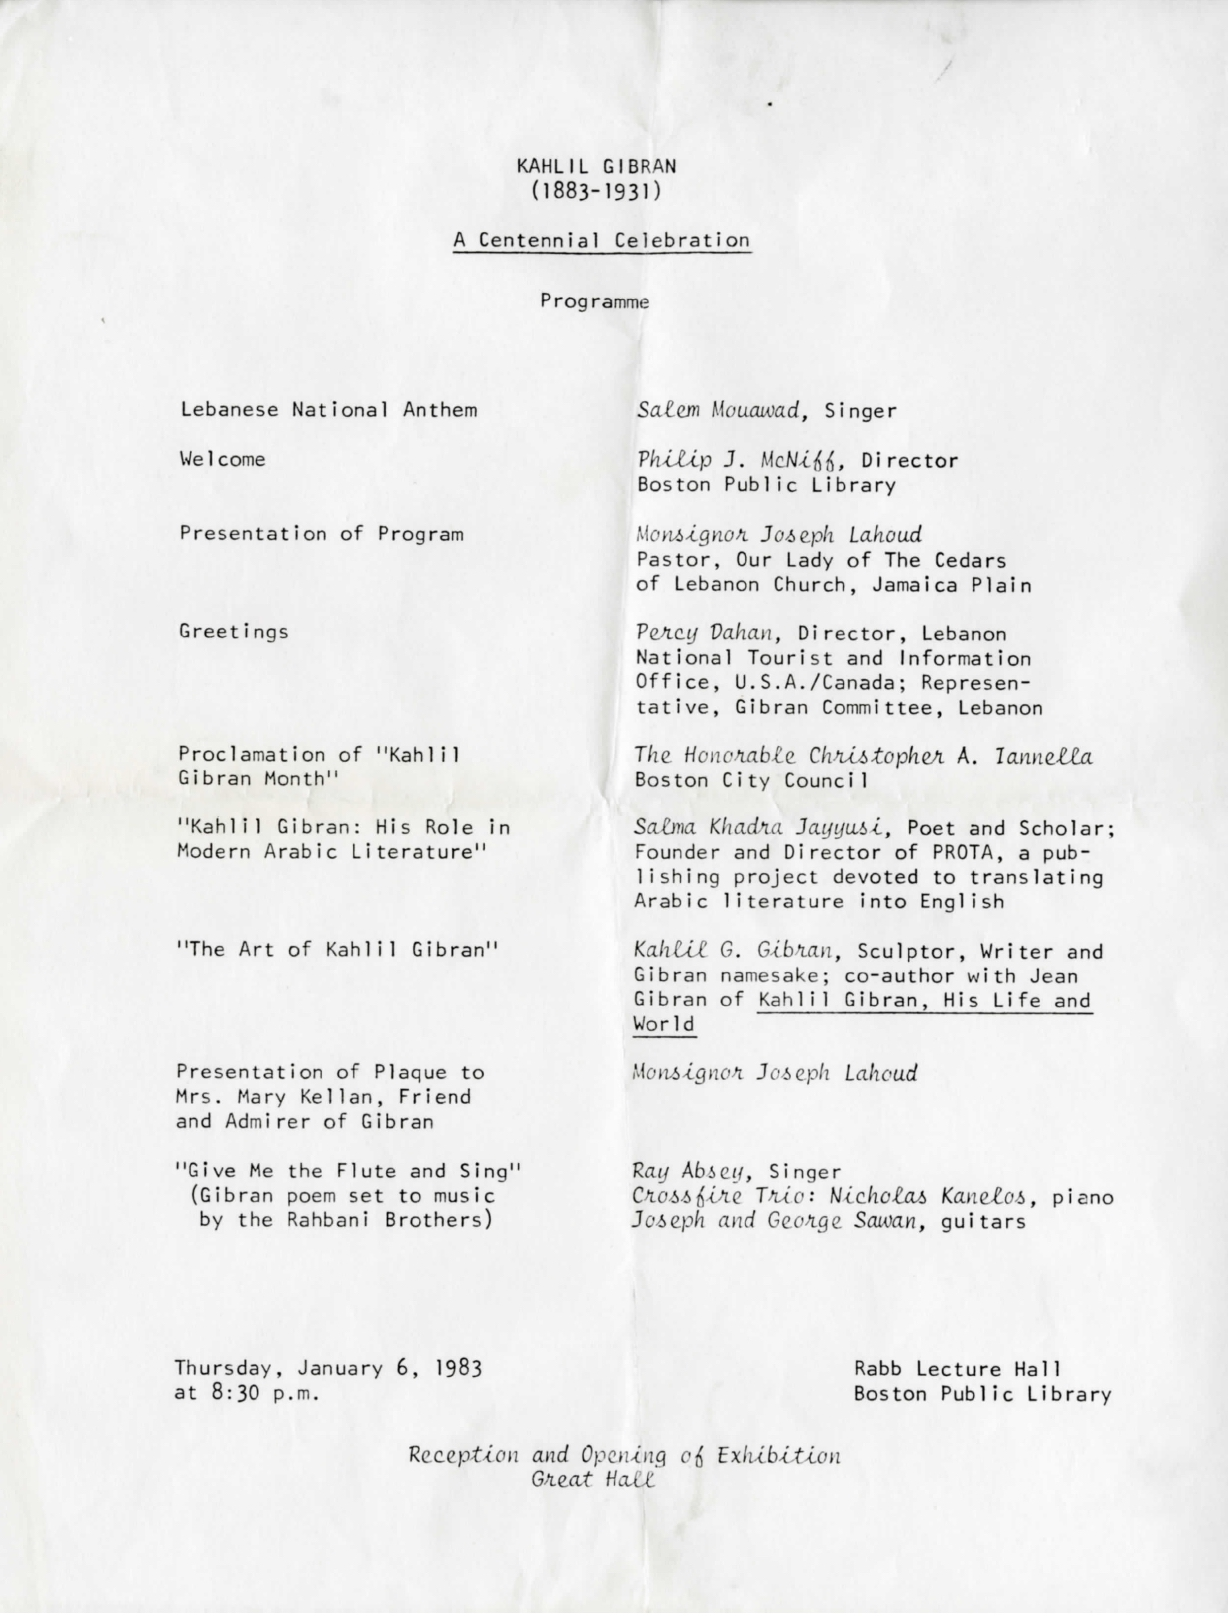 A Centennial Celebration program outline for Kahlil Gibran, Rabb Lecture Hall, Boston Public Library, January 6, 1983.